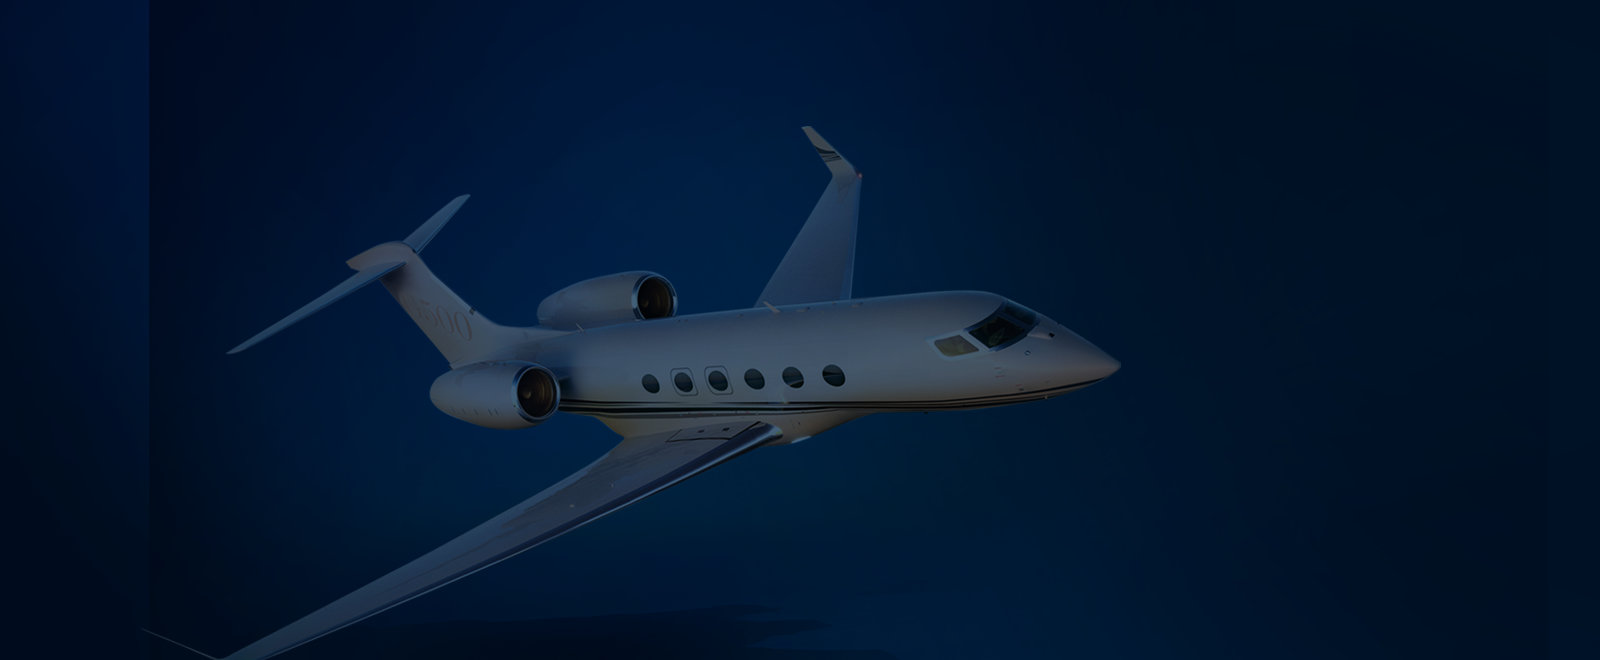 Private jet background